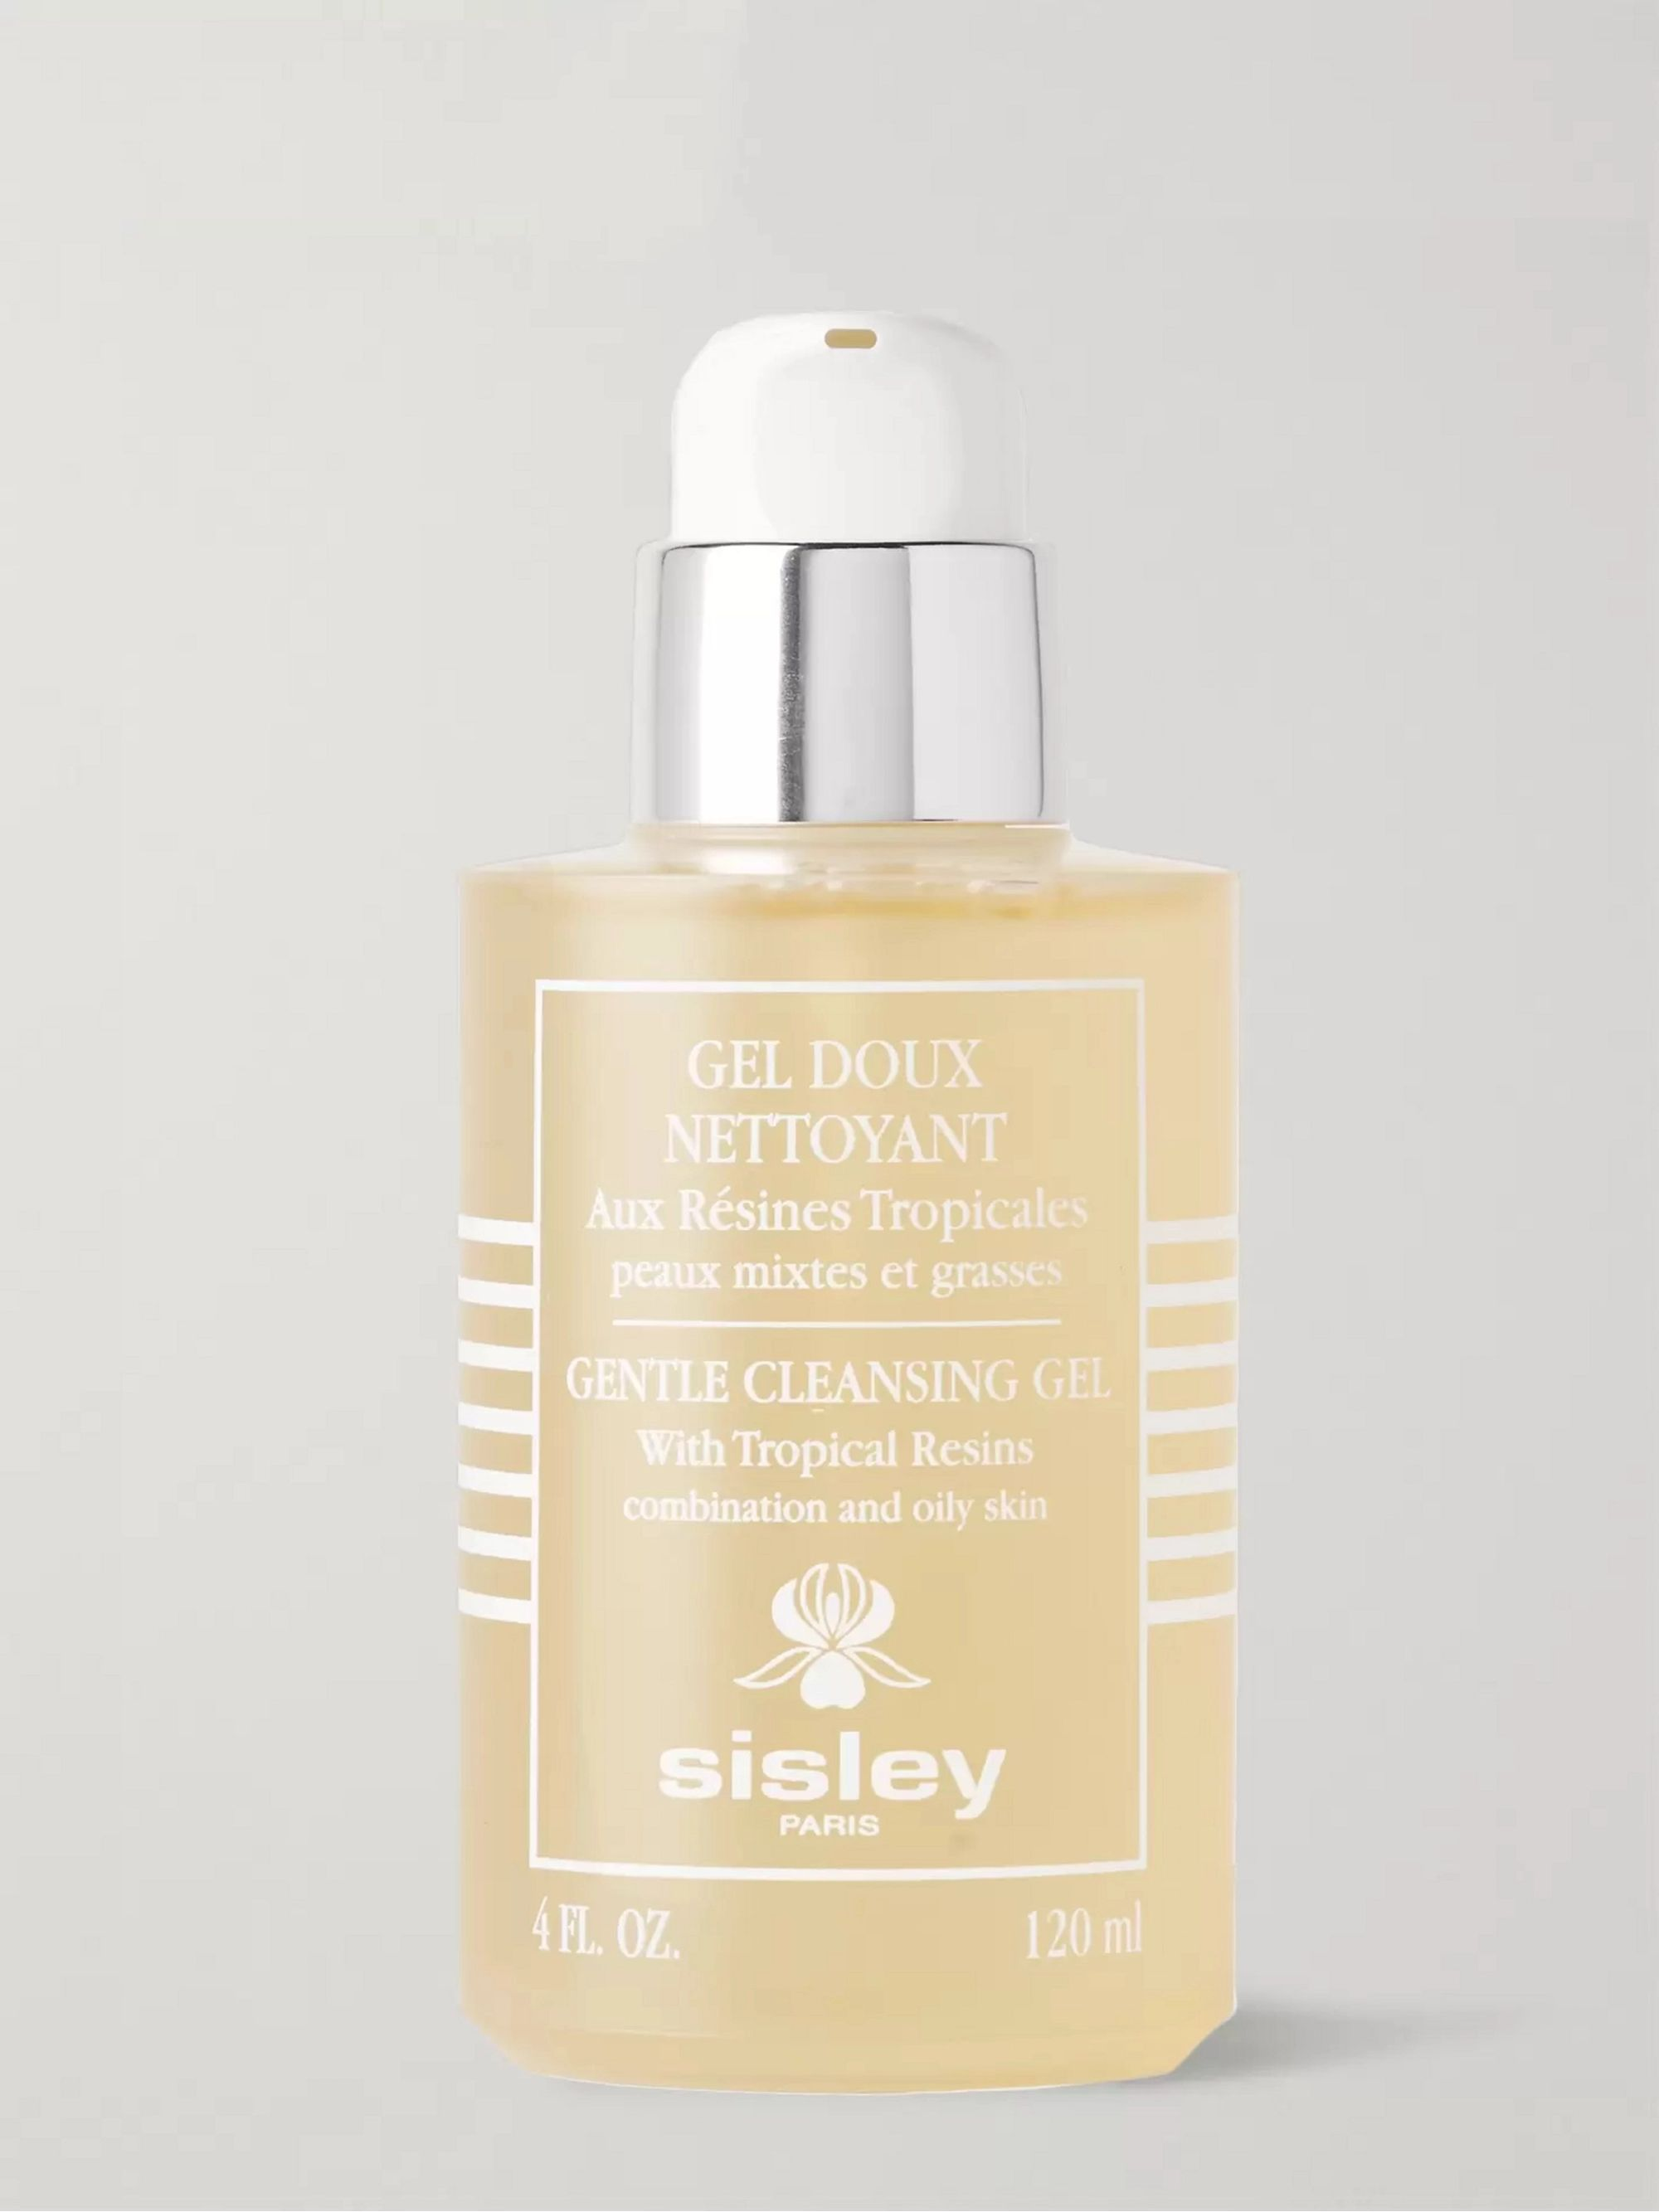 Sisley - Paris Gentle Cleansing Gel with Tropical Resins, 120ml